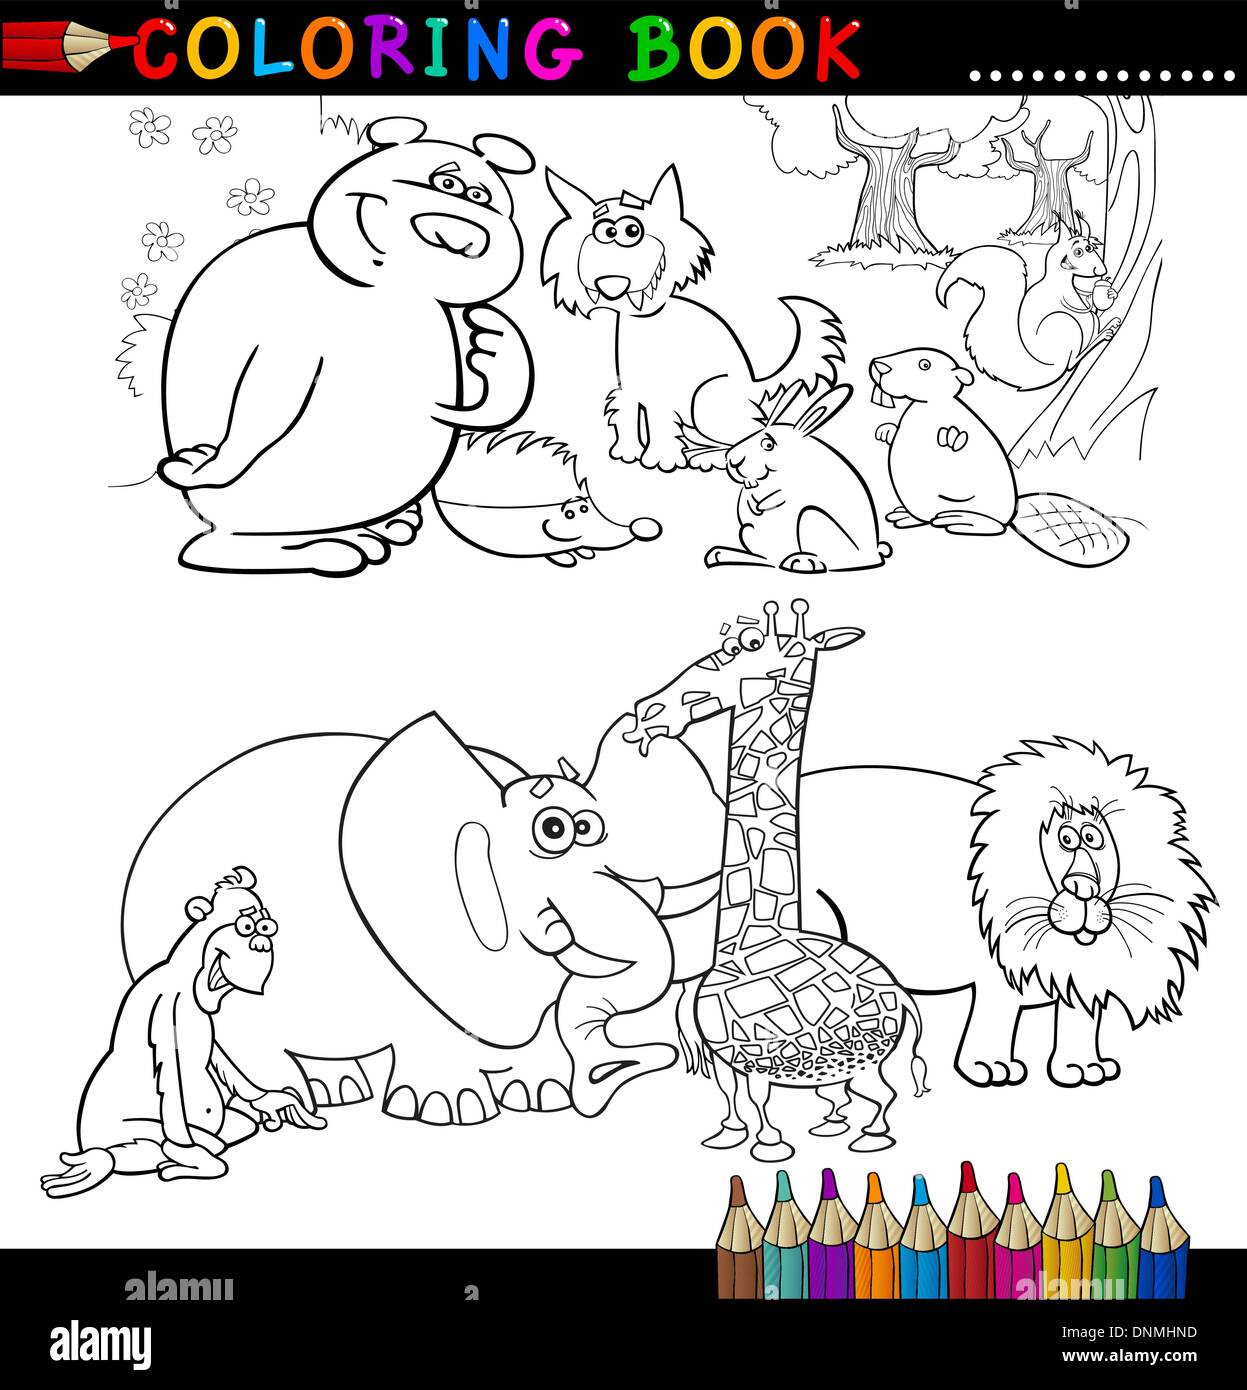 Coloring Book or Page Cartoon Illustration of Funny Wild and Safari ...